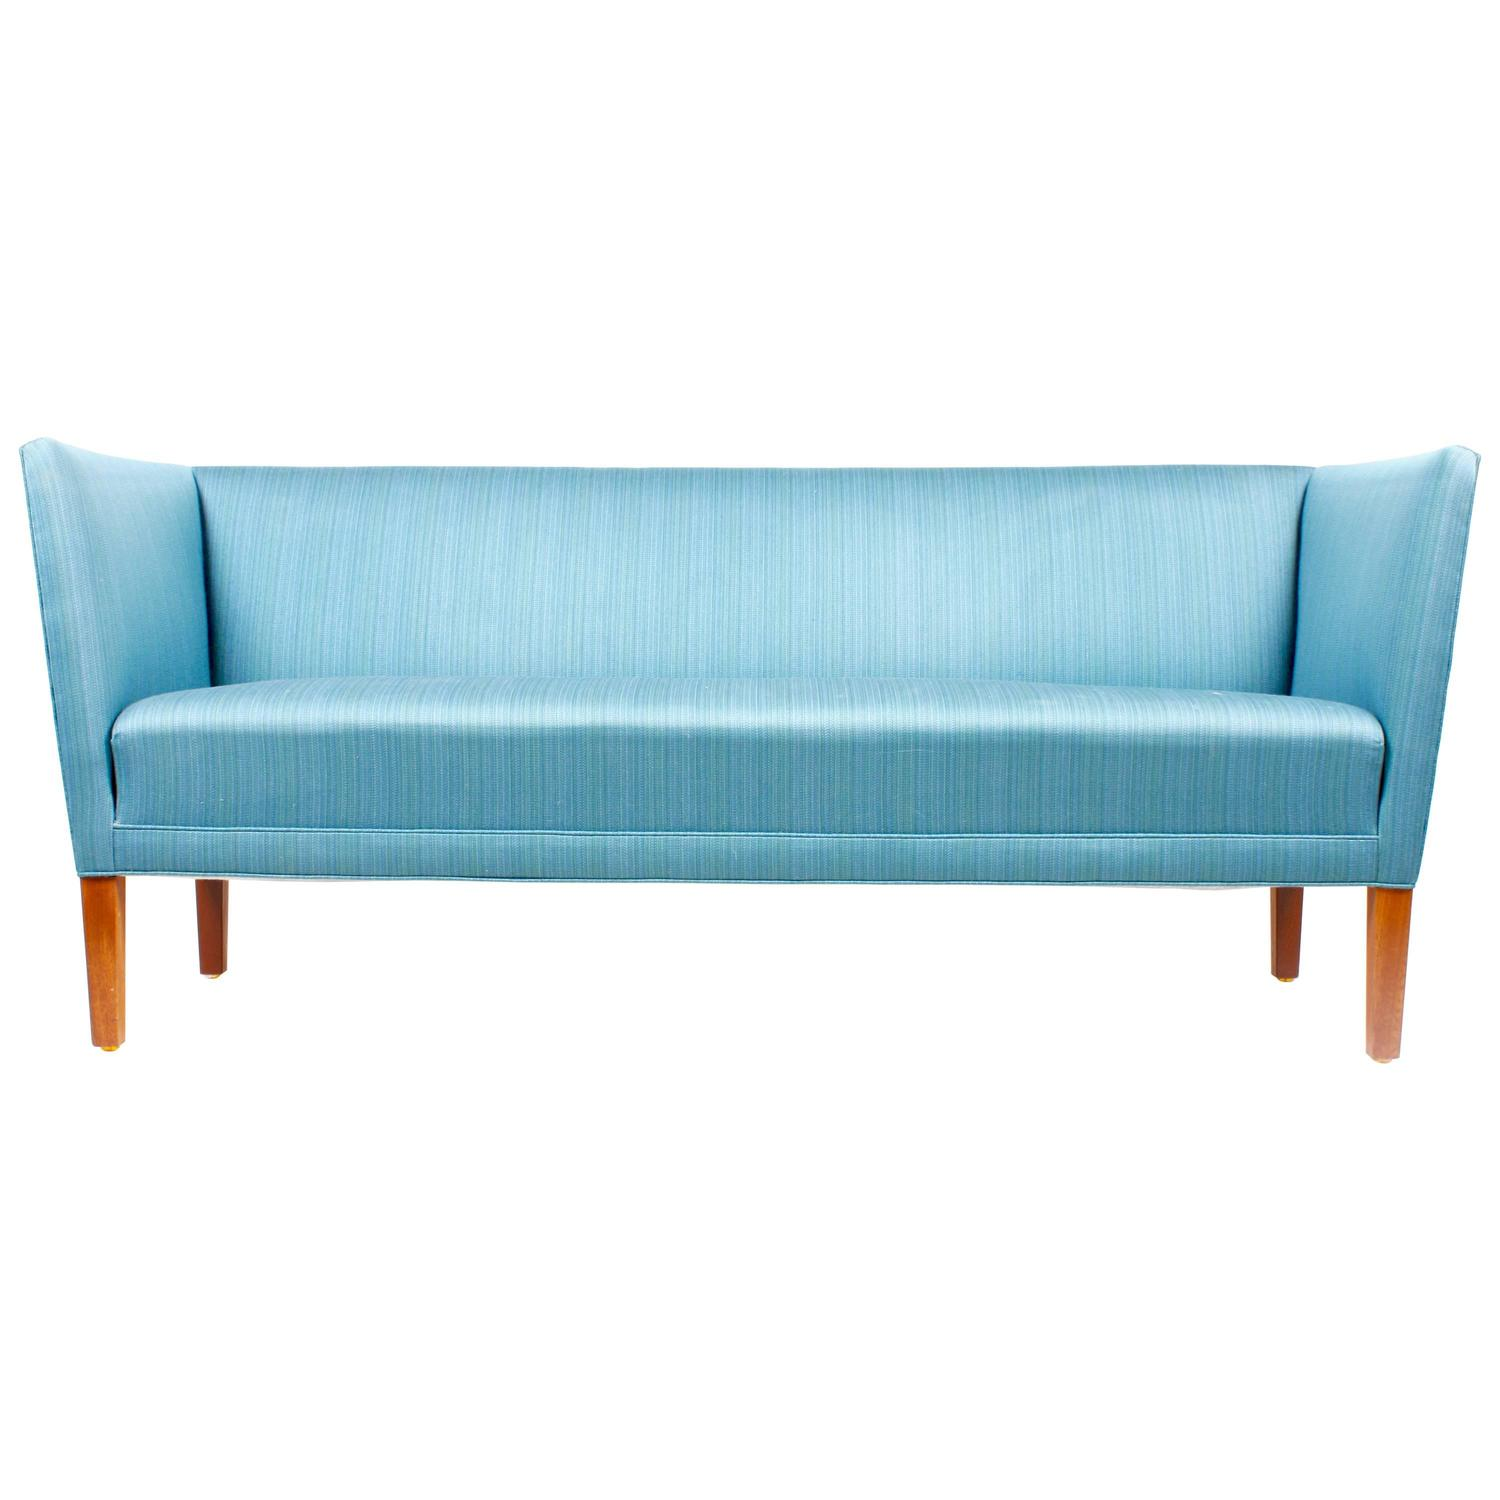 Classic sofa by grete jalk for sale at 1stdibs for Traditional couches for sale